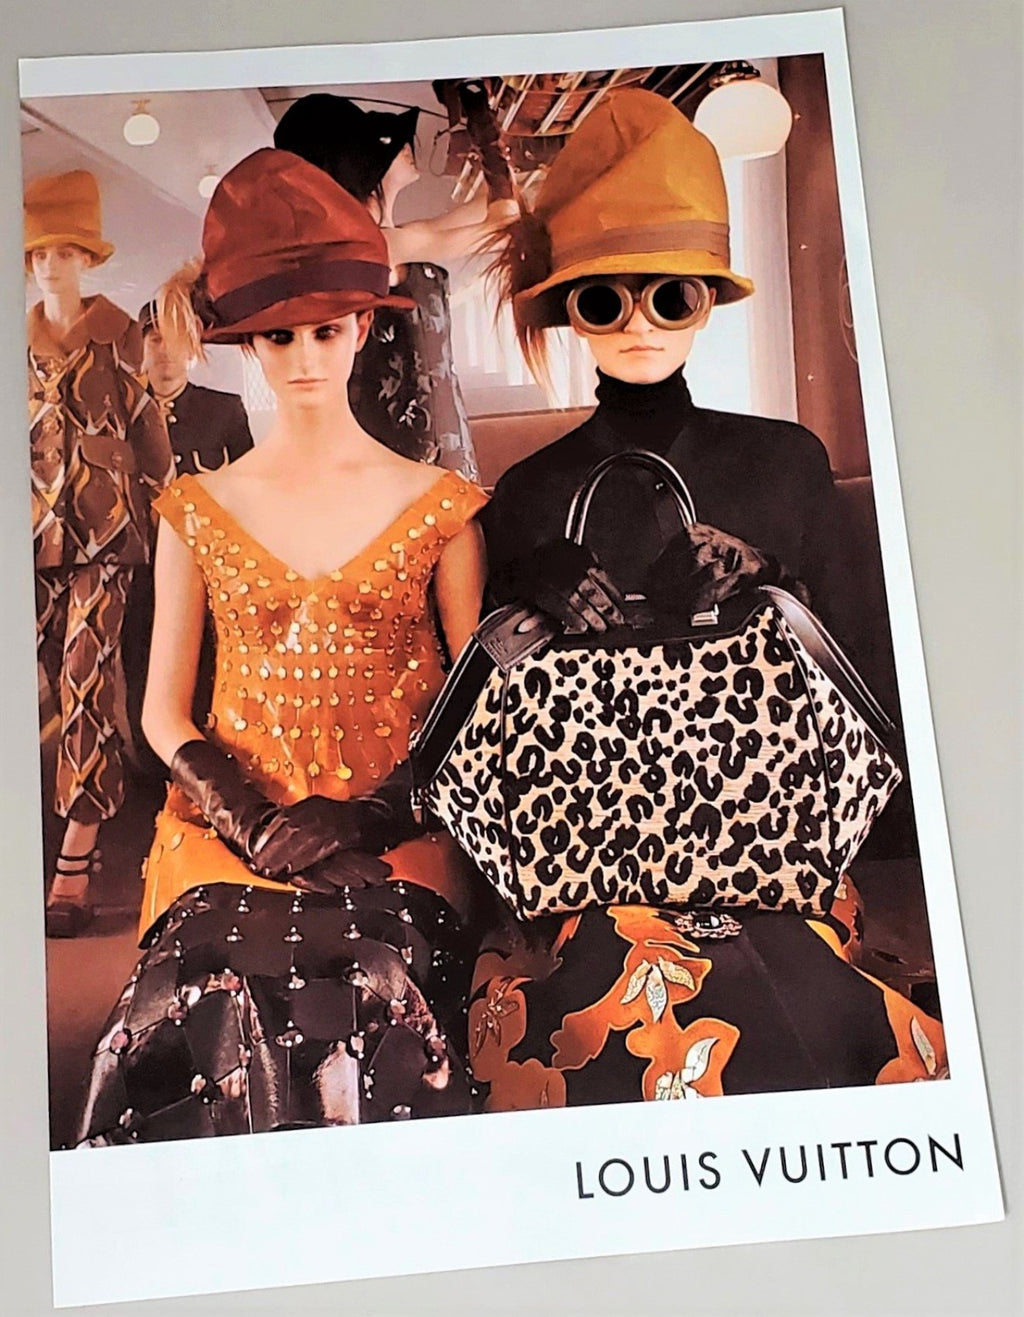 Original Louis Vuitton photograph advertisement page featured in September 2012 of Vogue magazine